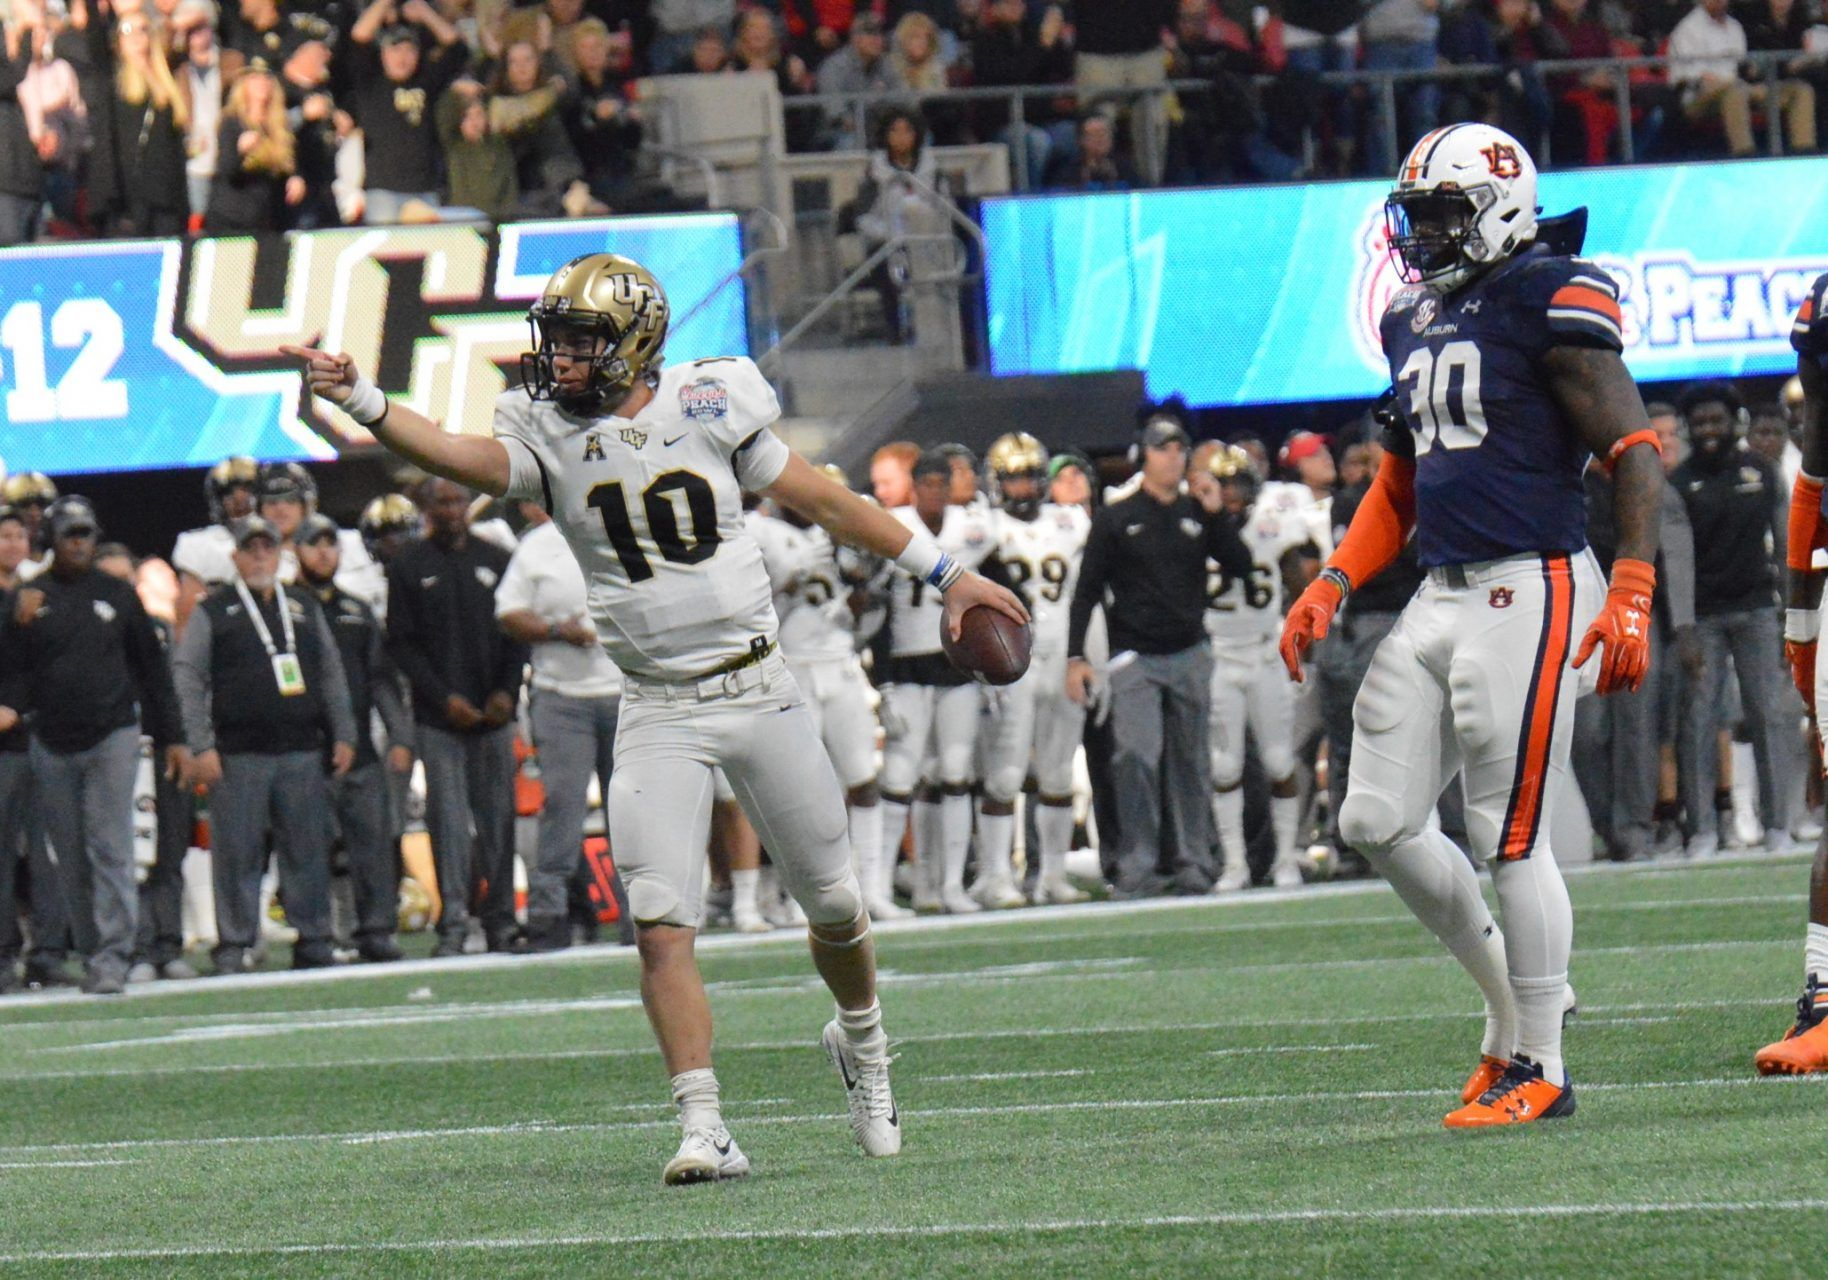 Ucf Earns Respect By Defeating Auburn 34 27 In The Chic Fil A Peach Bowl Scott Frost H American Athletic Conference Best Running Backs Heisman Trophy Winners